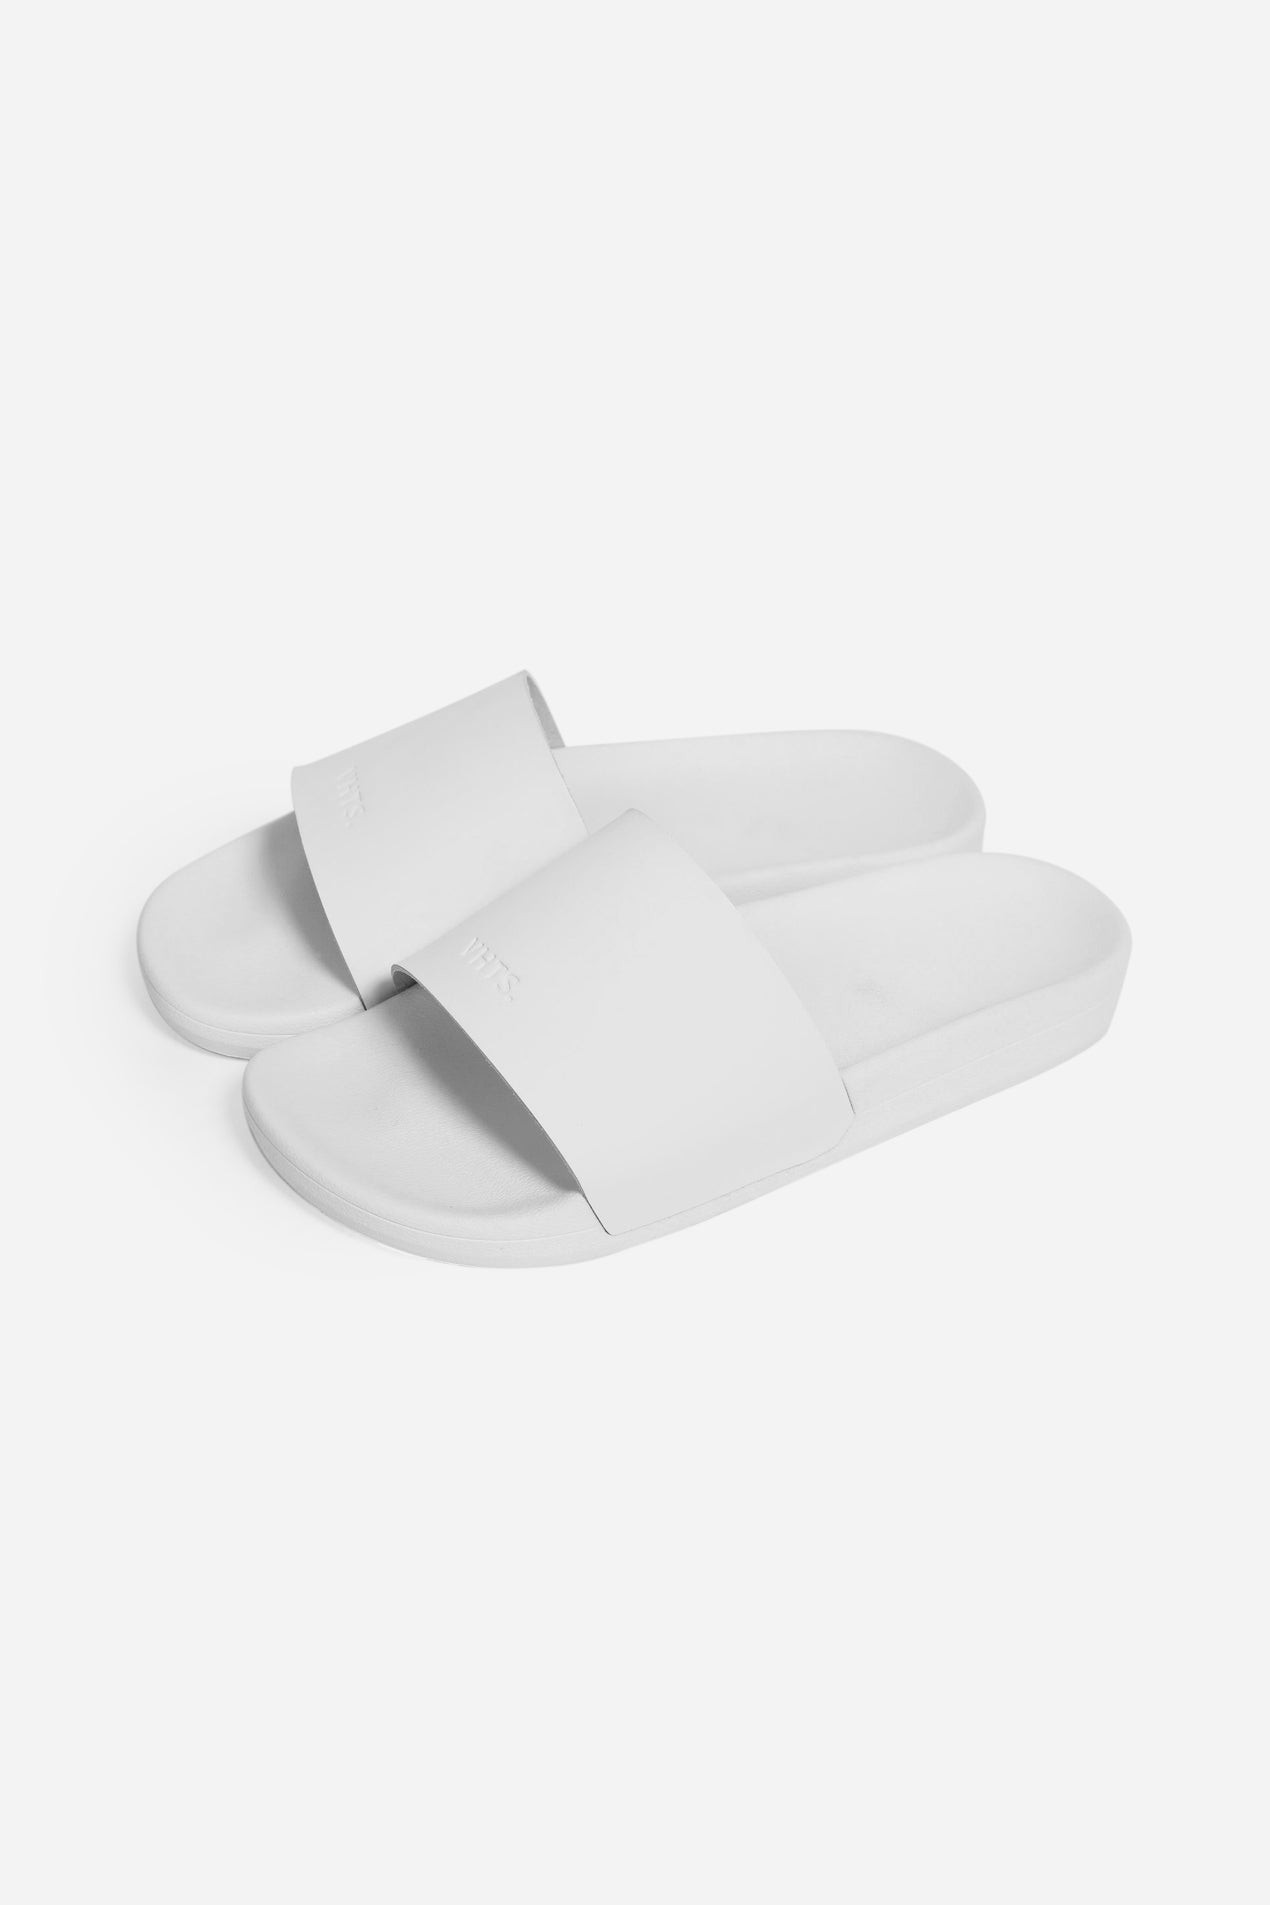 brazilian jiu jitsu apparel vhtseurope vhtsny white MEA – SLIDE this product is most comfortable and durable slide in the game! Leather Upper Band Polyurethane Sole Light Weight Comfortable Sole Durable Minimalistic Clean Design   vhts europe